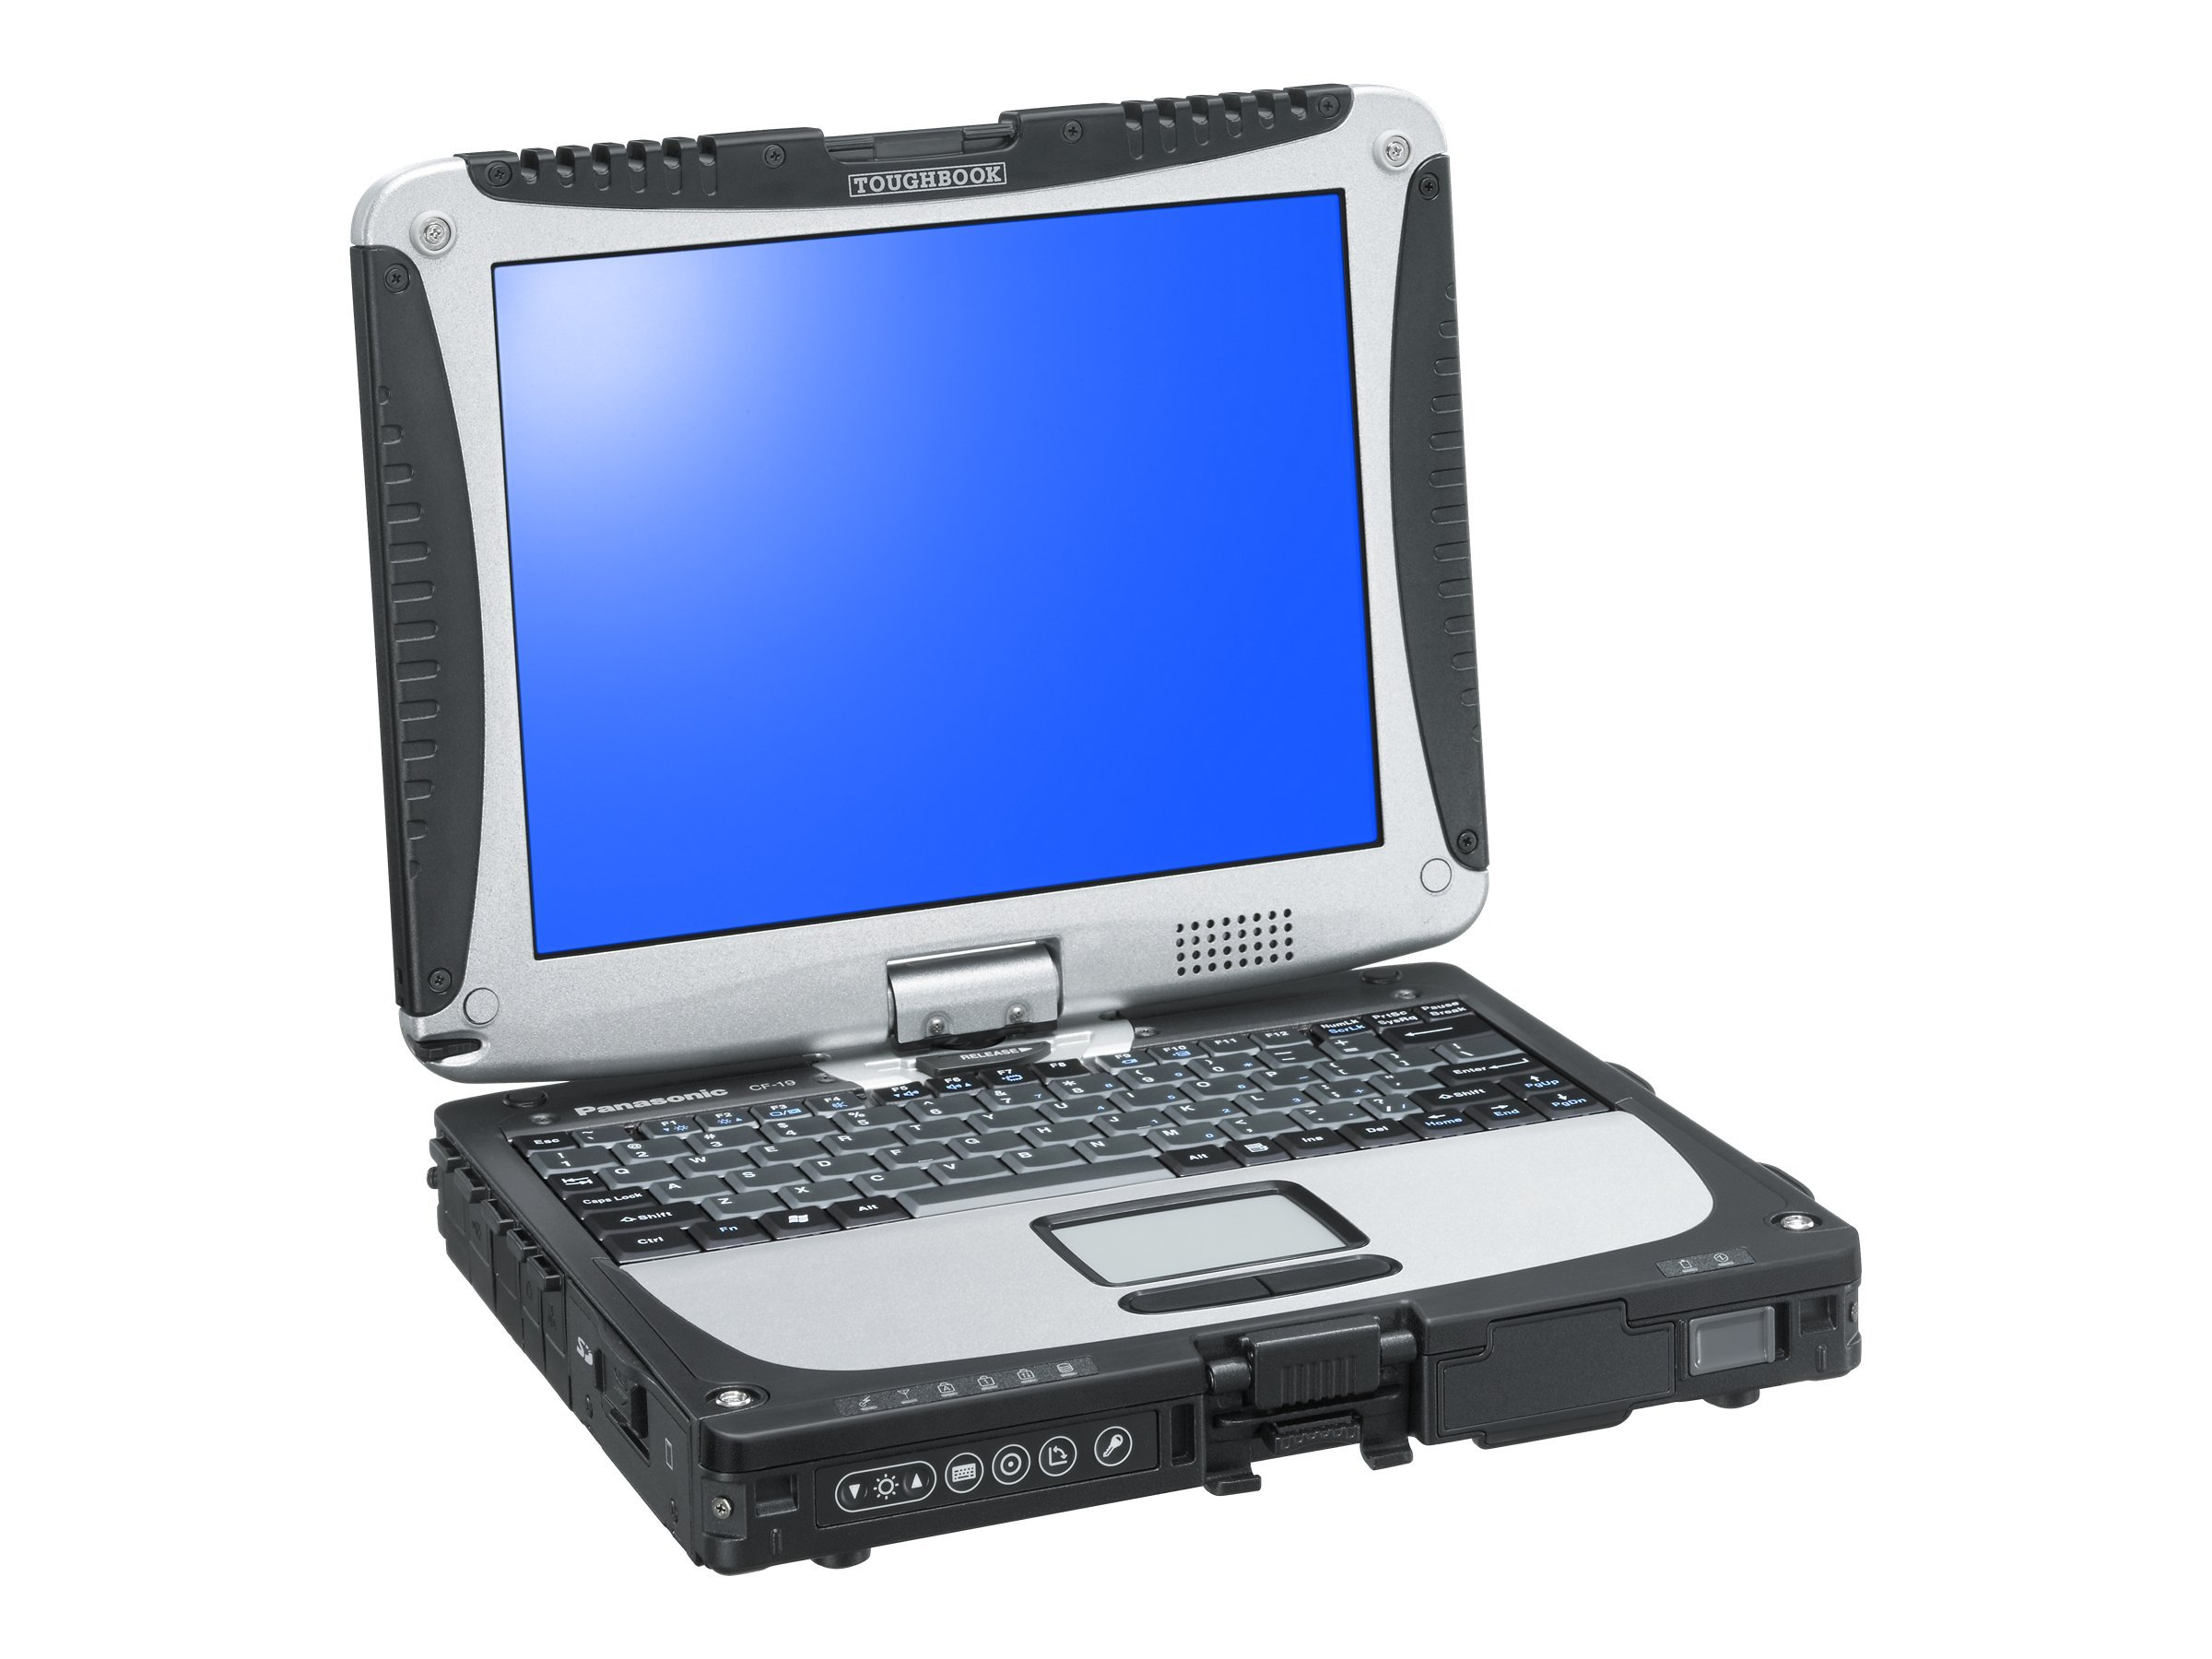 Panasonic Toughbook 19 Core i5-3610ME 2.7GHz 10.1 XGA MT W7 (W8.1P COA), CF-19ZA001CM, 18494926, Notebooks - Convertible